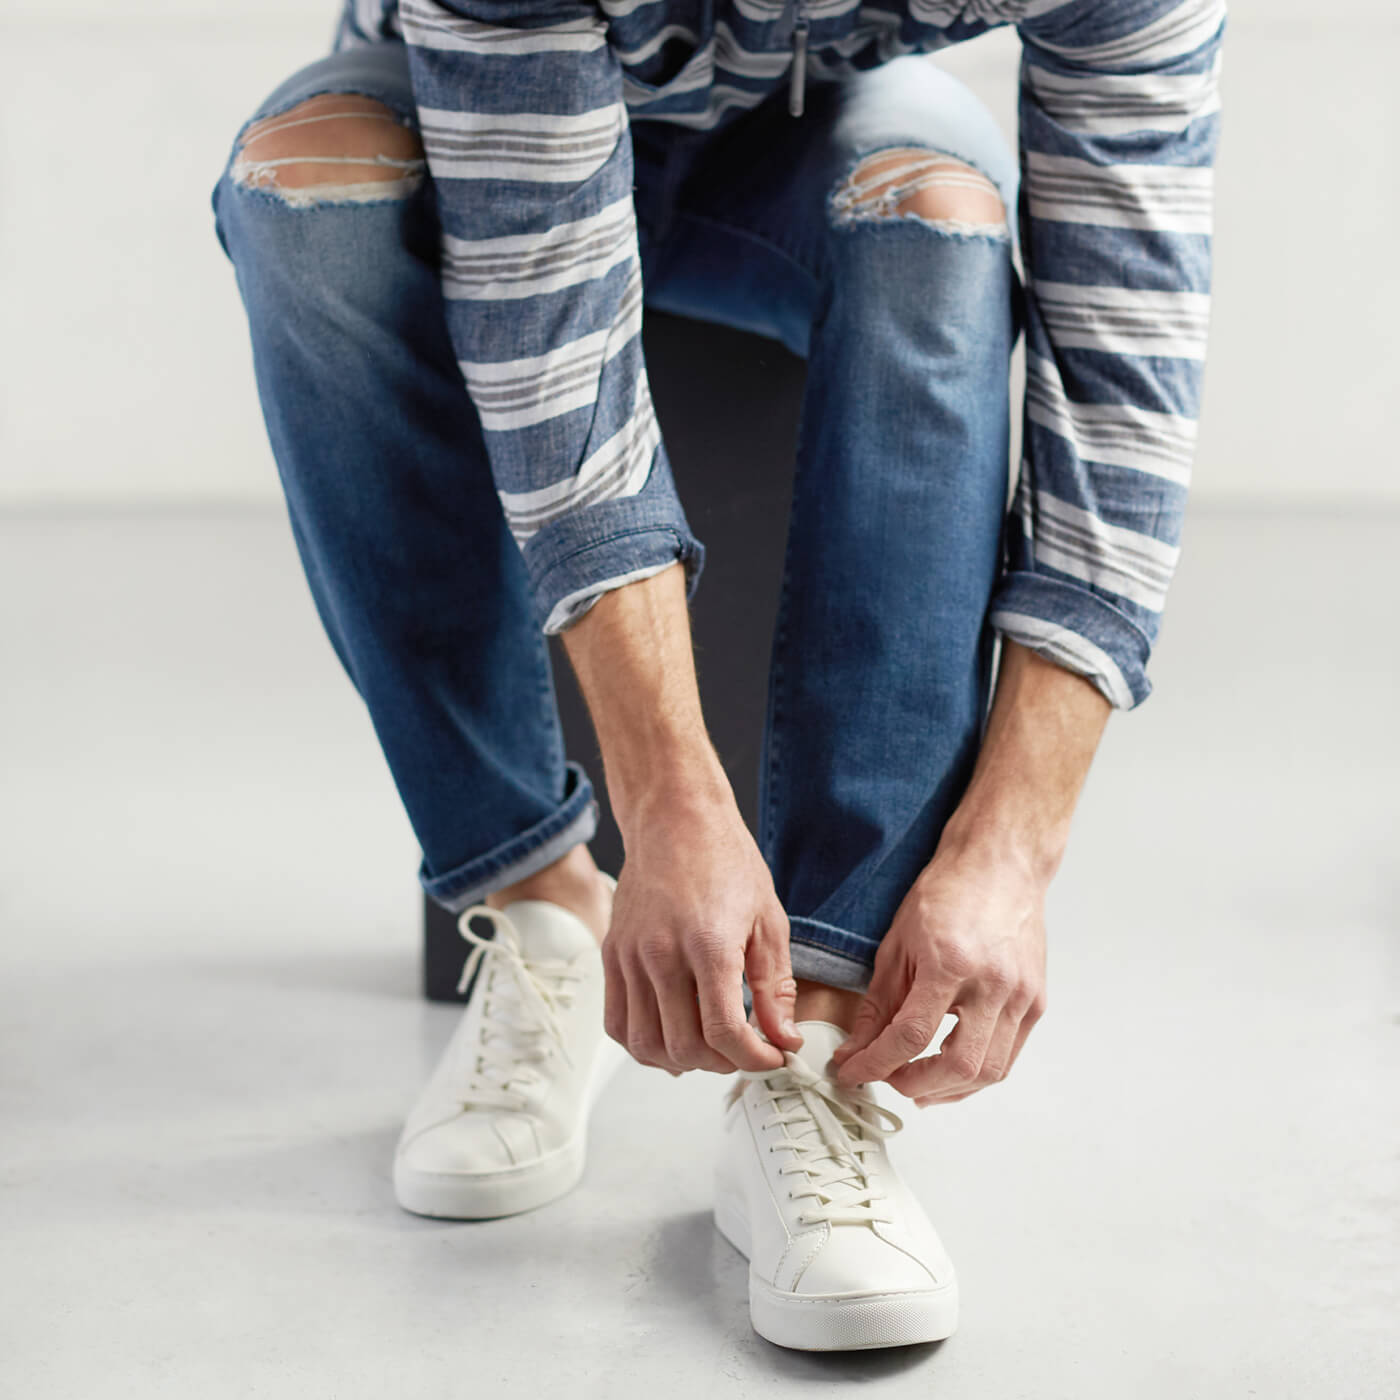 aeb769cb10c0 The Right Way to Pair Jeans with Shoes